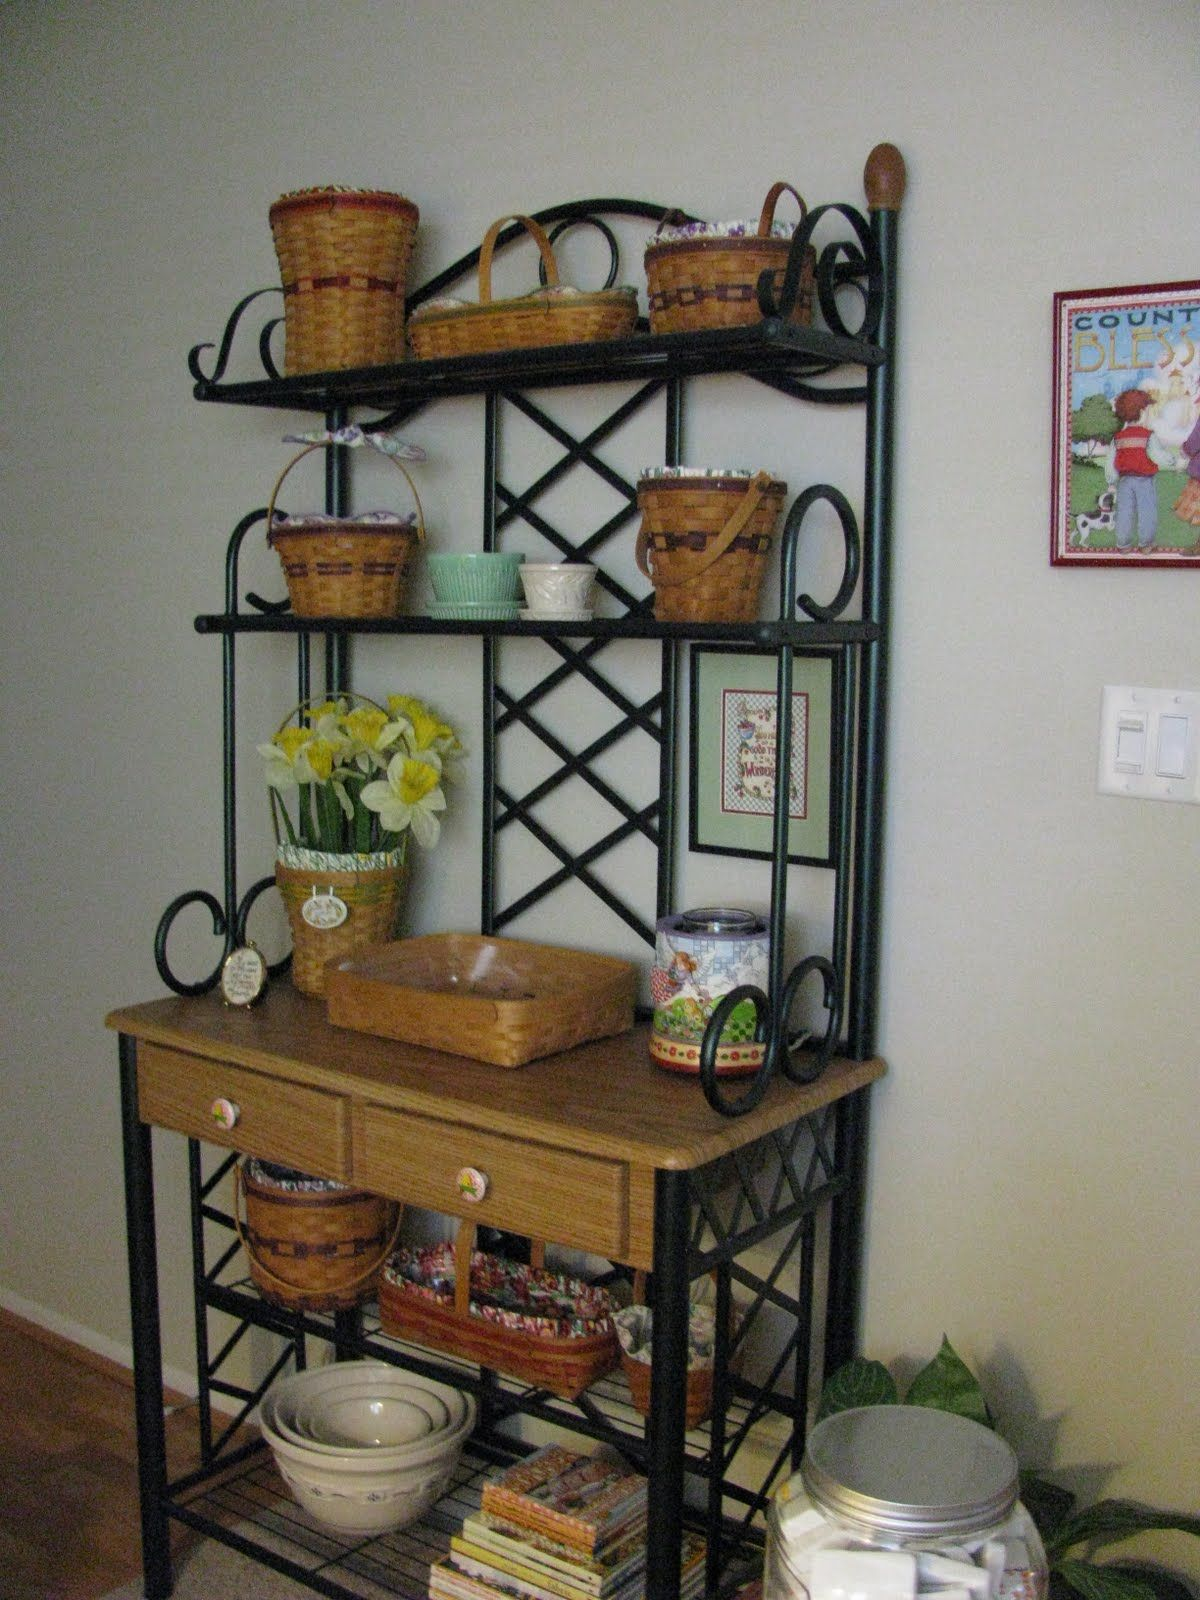 ideas dazzling wood wrought baskets drawers corner iron rack racks decorative bakers with ebay gorgeous furniture design storage